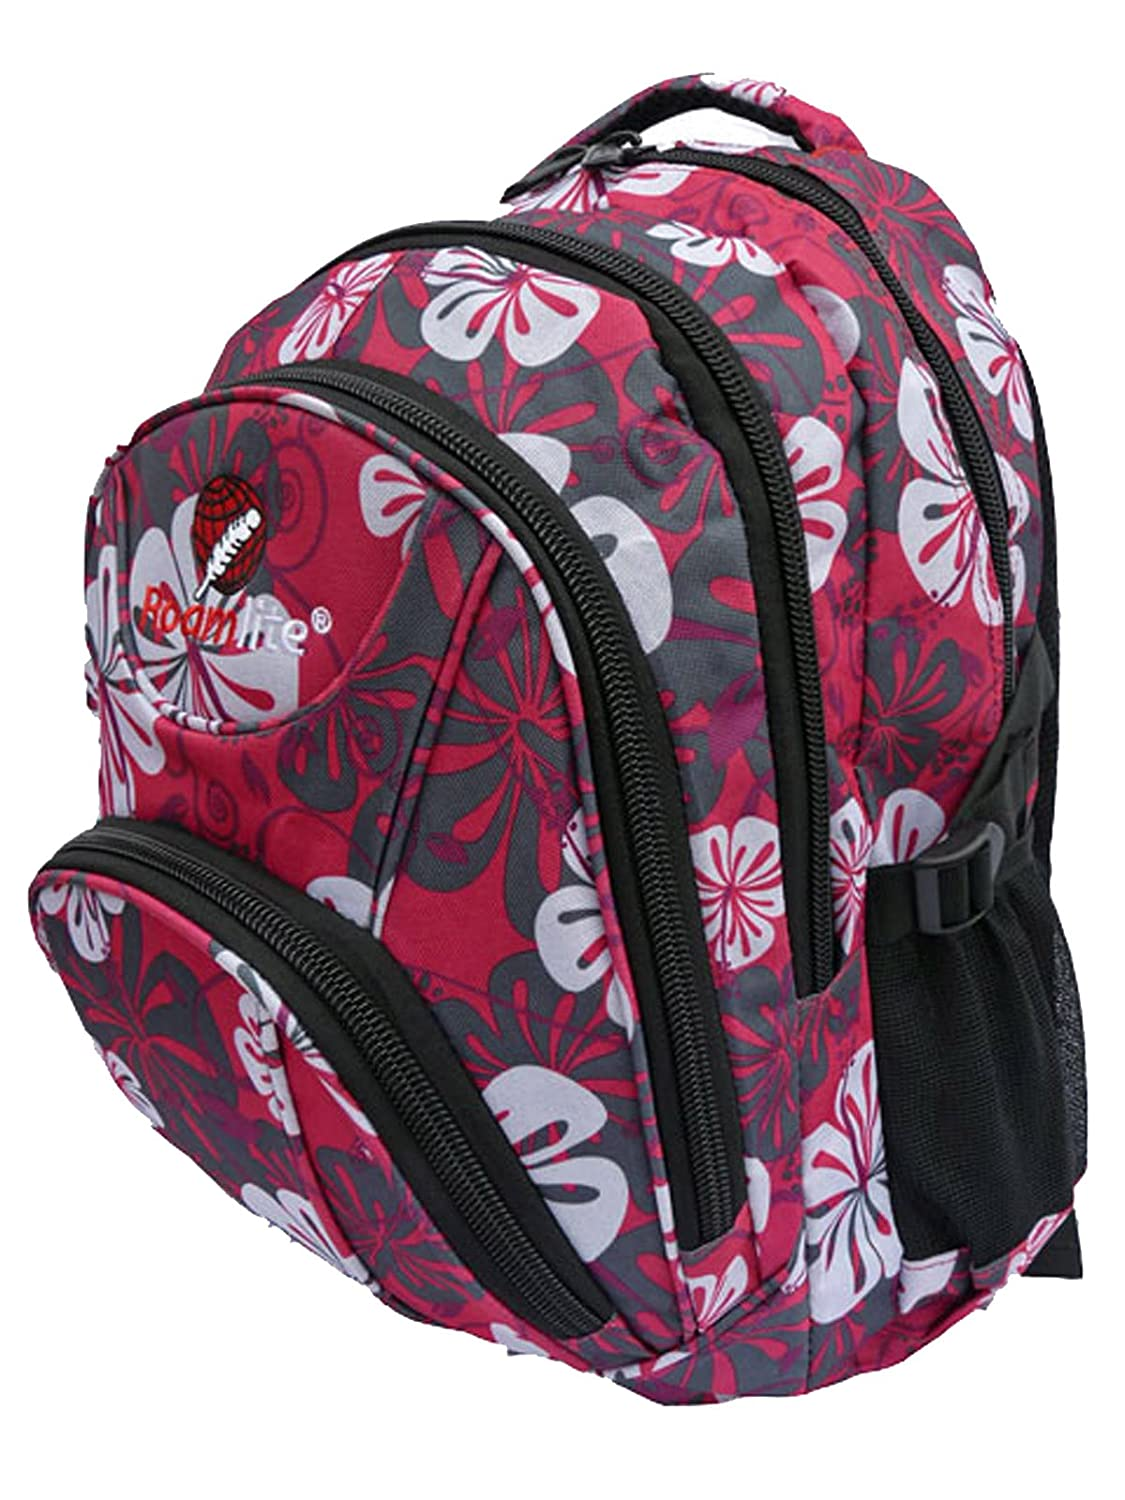 b516974c26bf Backpacks for Skiing and Snow Boarding - Hand Luggage 30 Litre size Rucksack  Daypack - Pink Flowers Print - Multiple Pockets and Compartments - Cabin Bag  ...